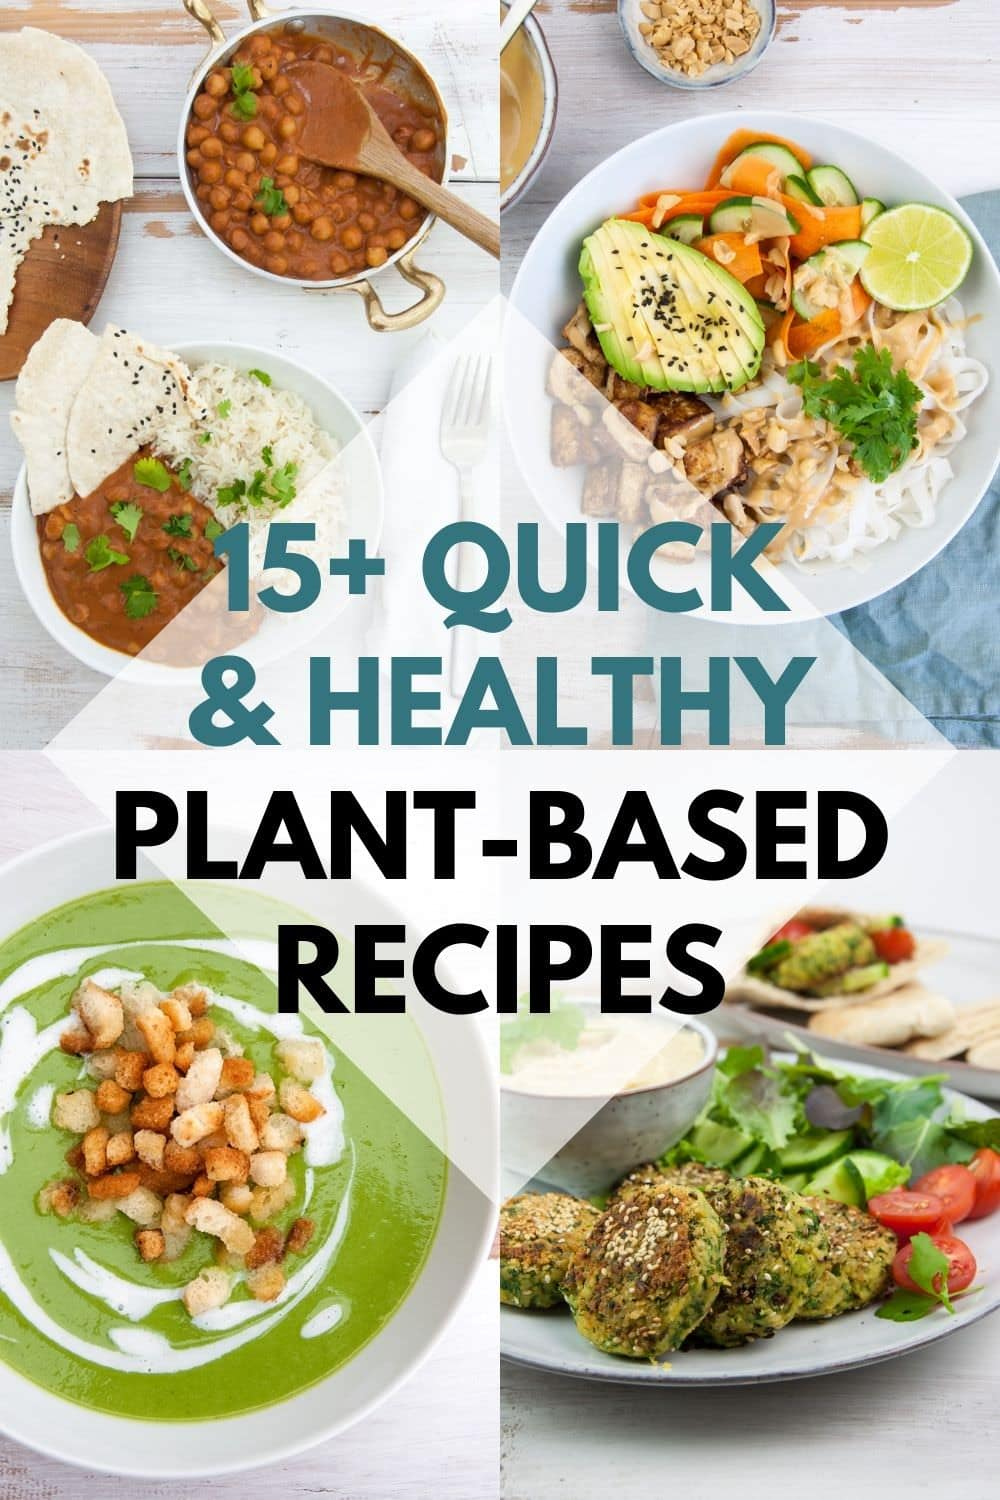 15 Quick & Healthy Plant-Based Recipes